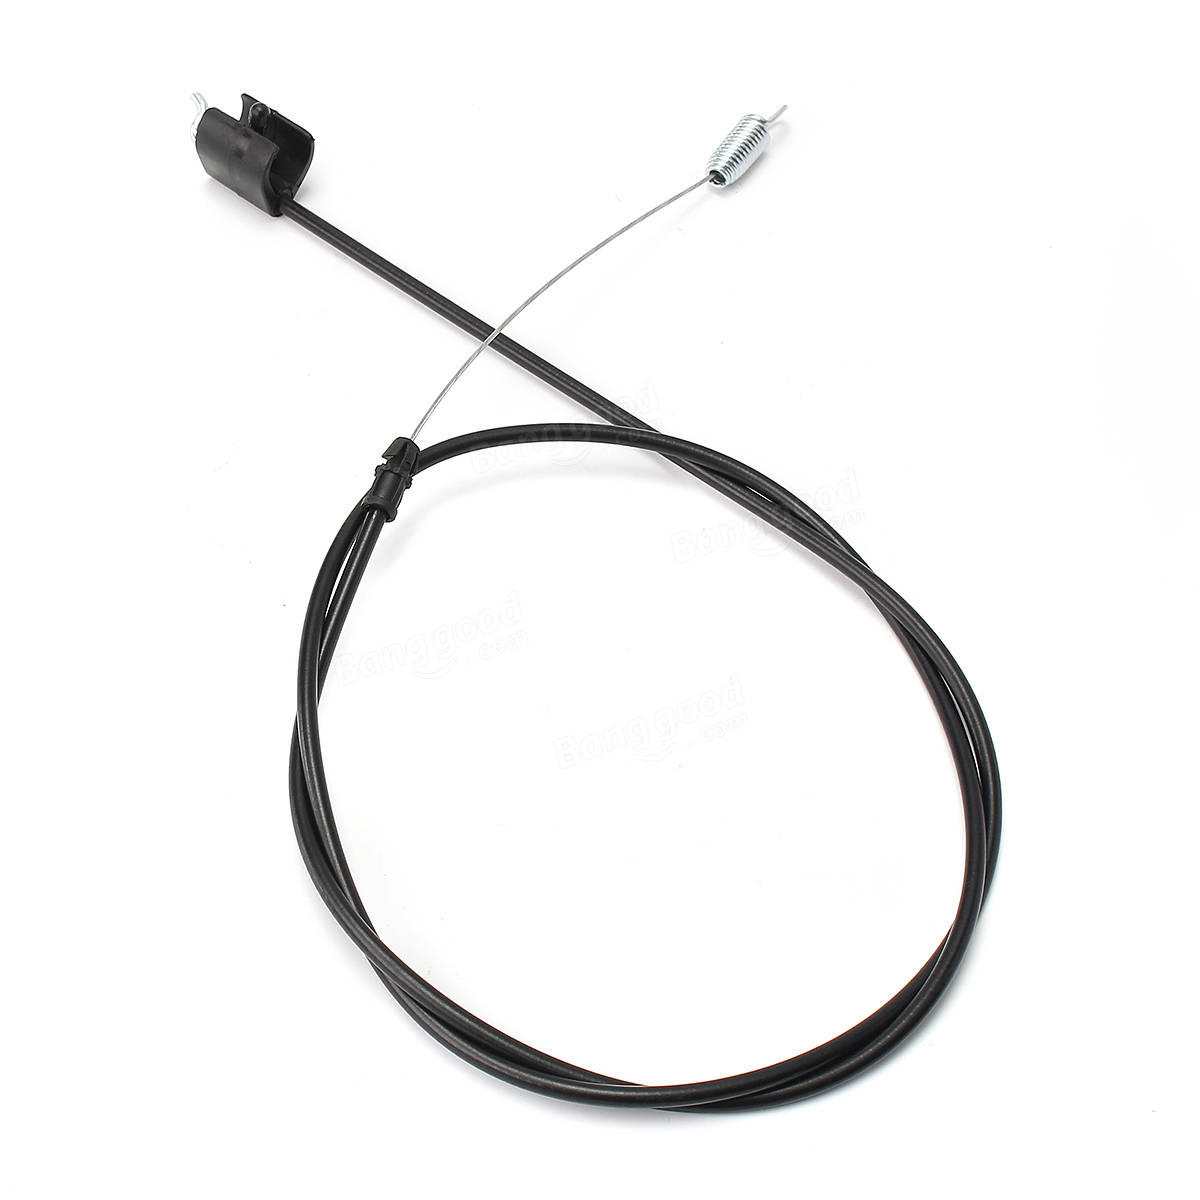 Push Lawn Mower Control Cable 290-729 For AYP 194653